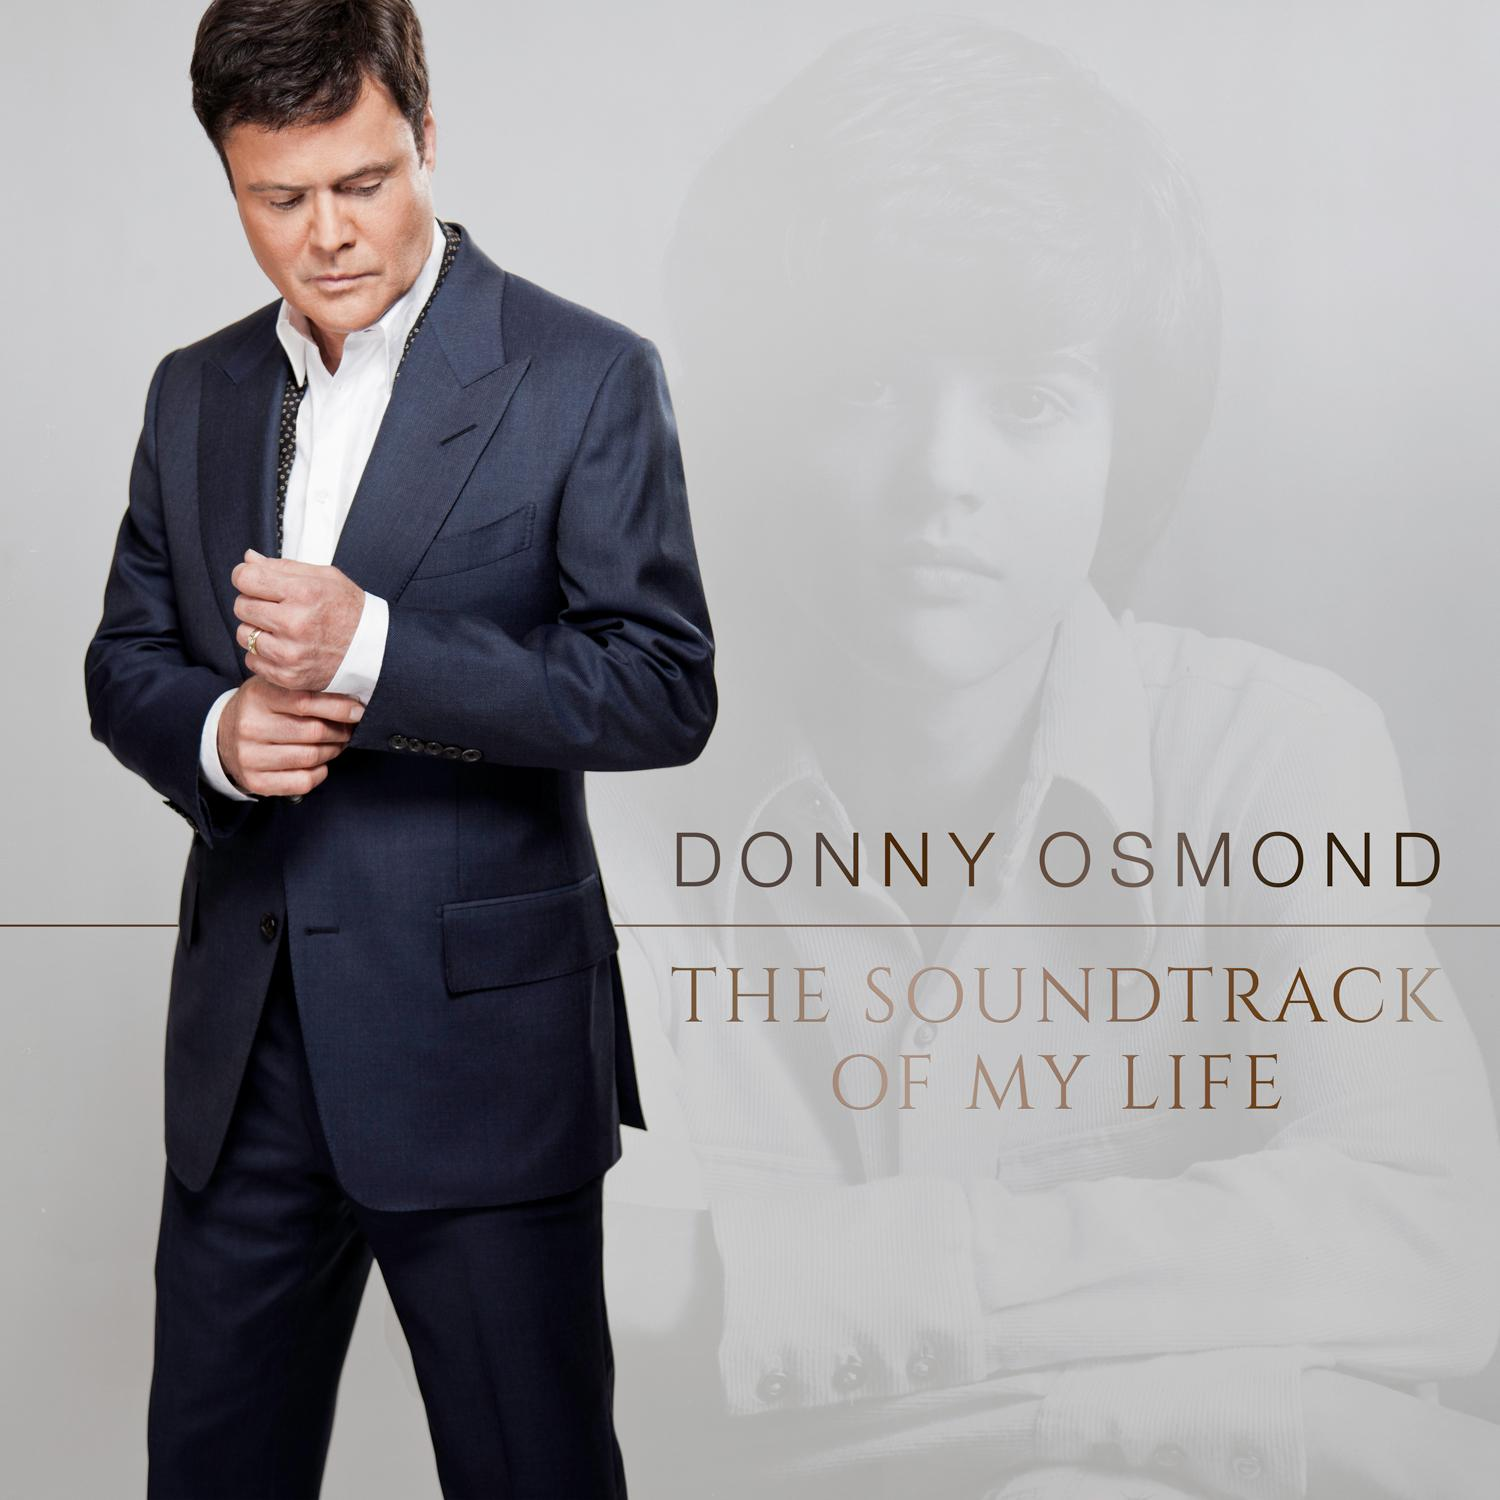 RT @FlamingoVegas: Our #MCM is the great @donnyosmond! His new album, The Soundtrack of My Life, is coming soon! http://t.co/QYvYD92M1H htt…